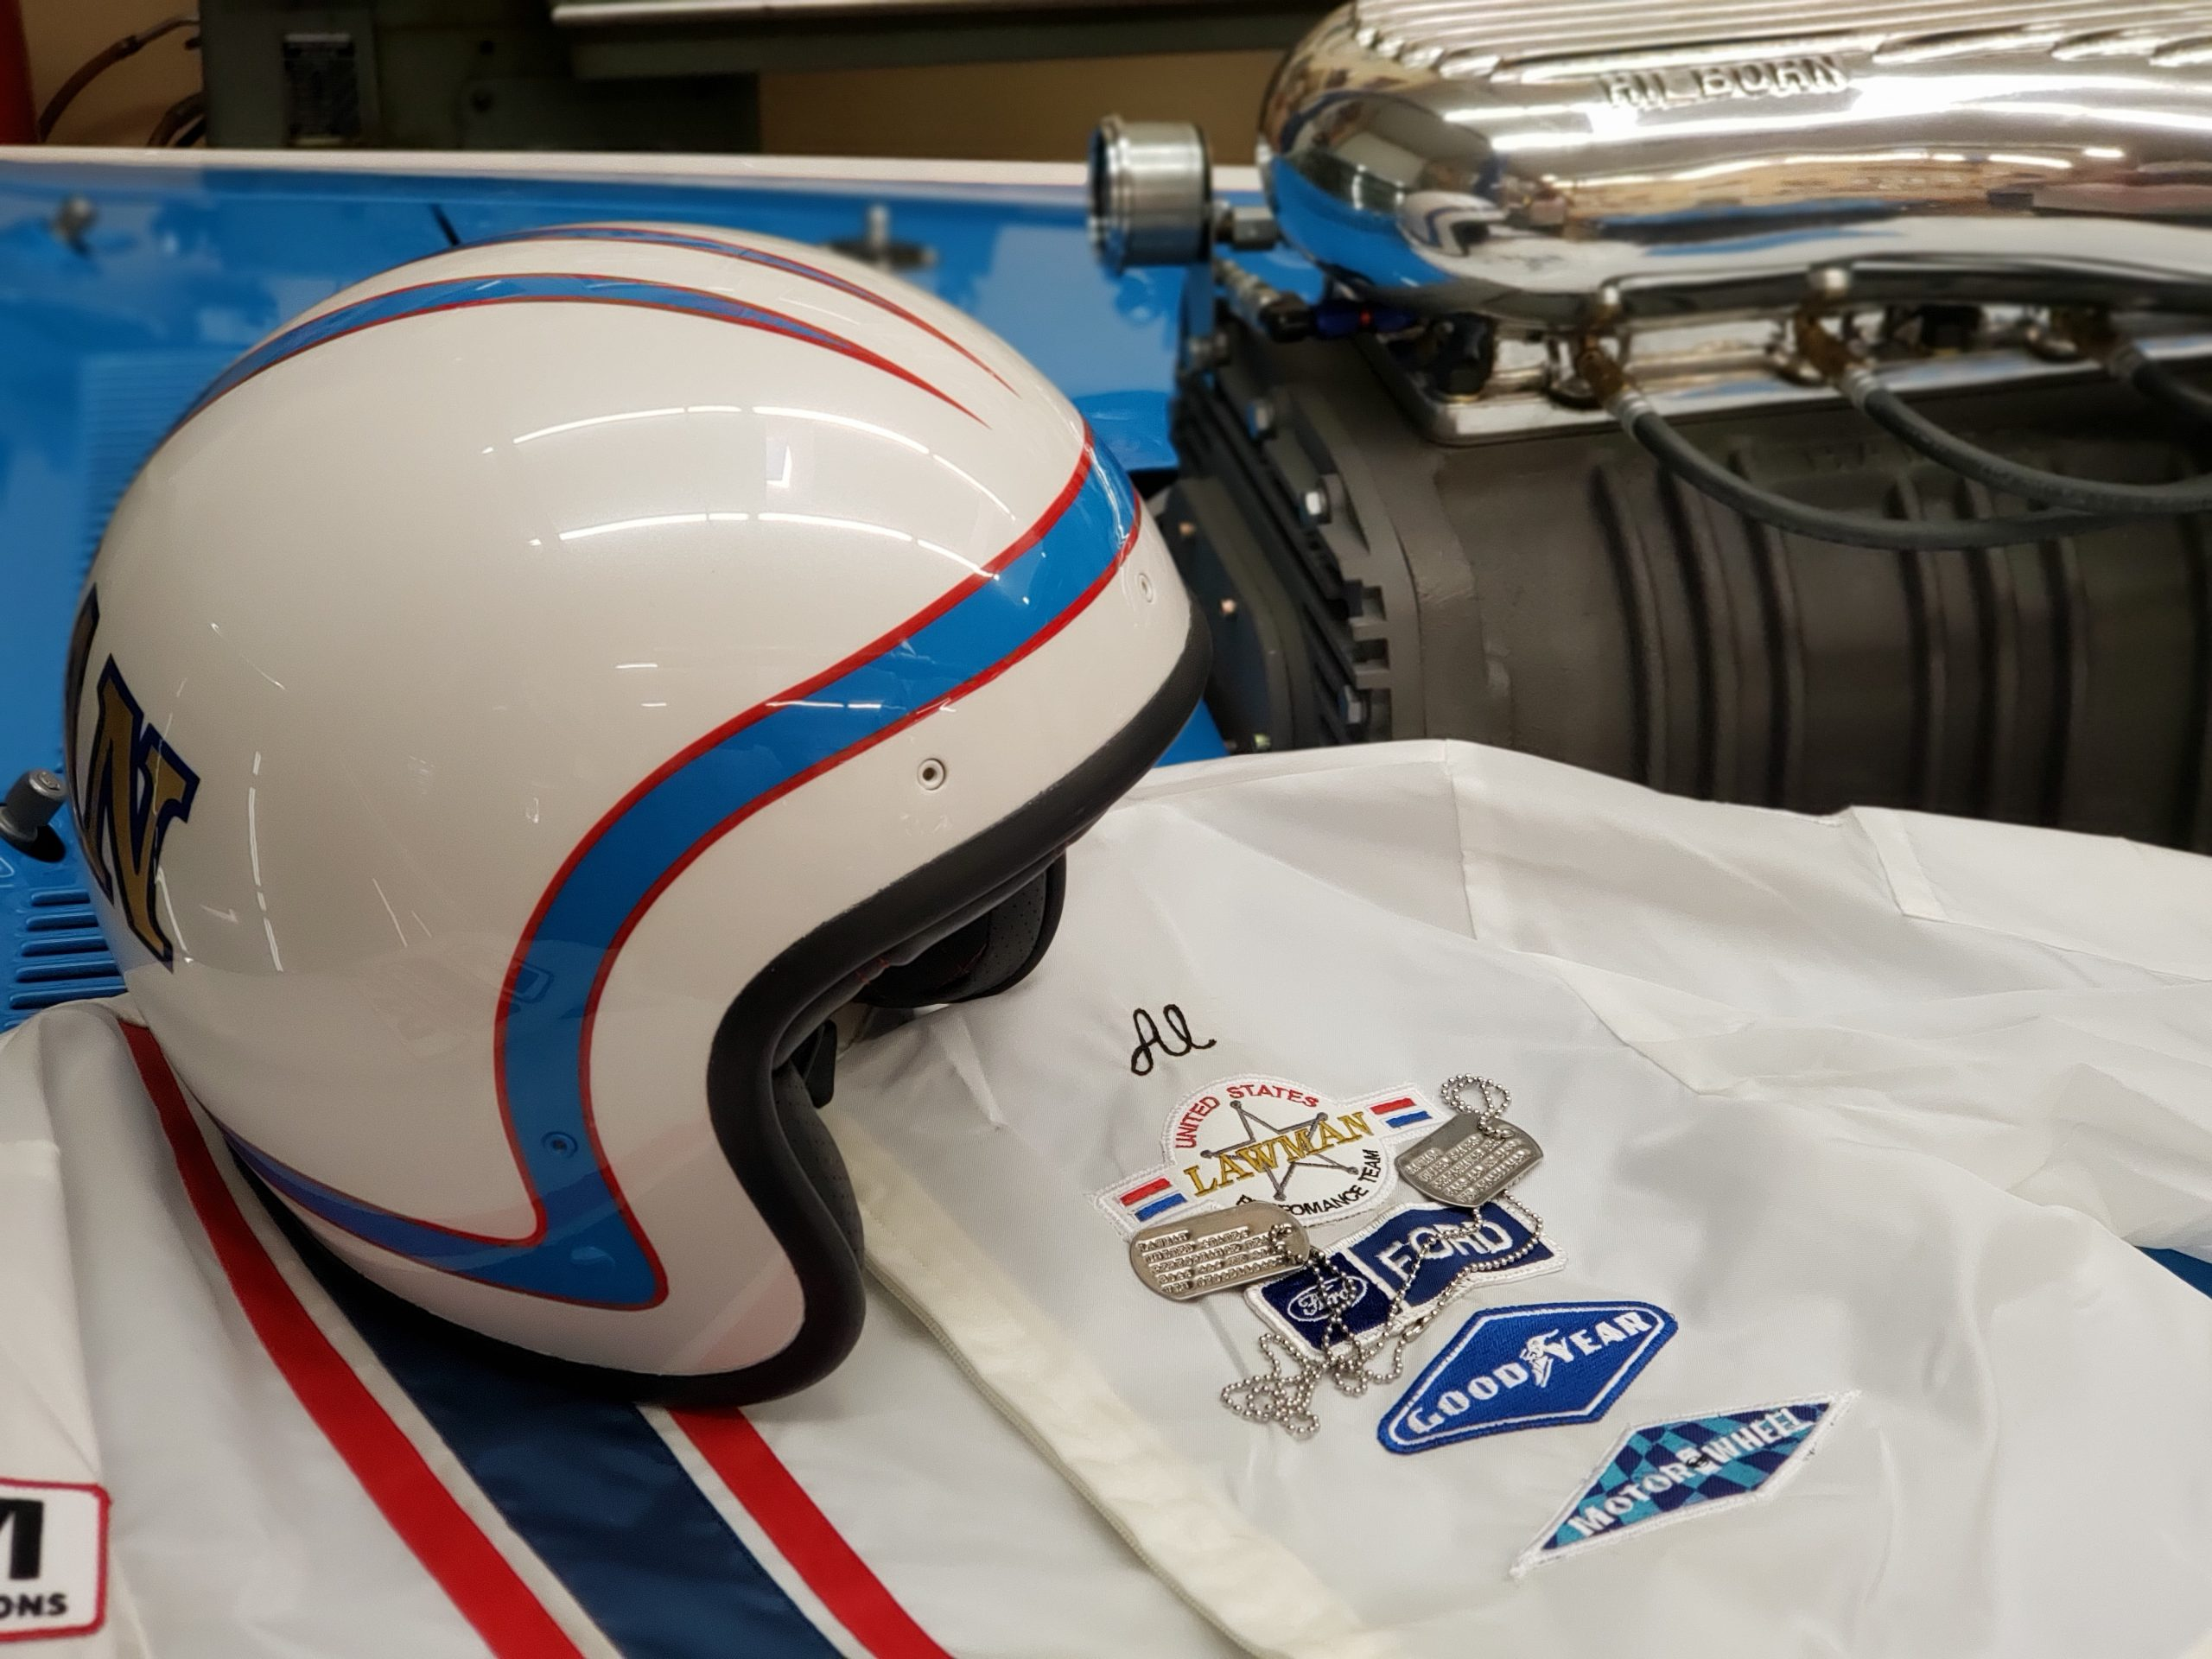 Lawman Boss 429 Ford Mustang helmet and suit